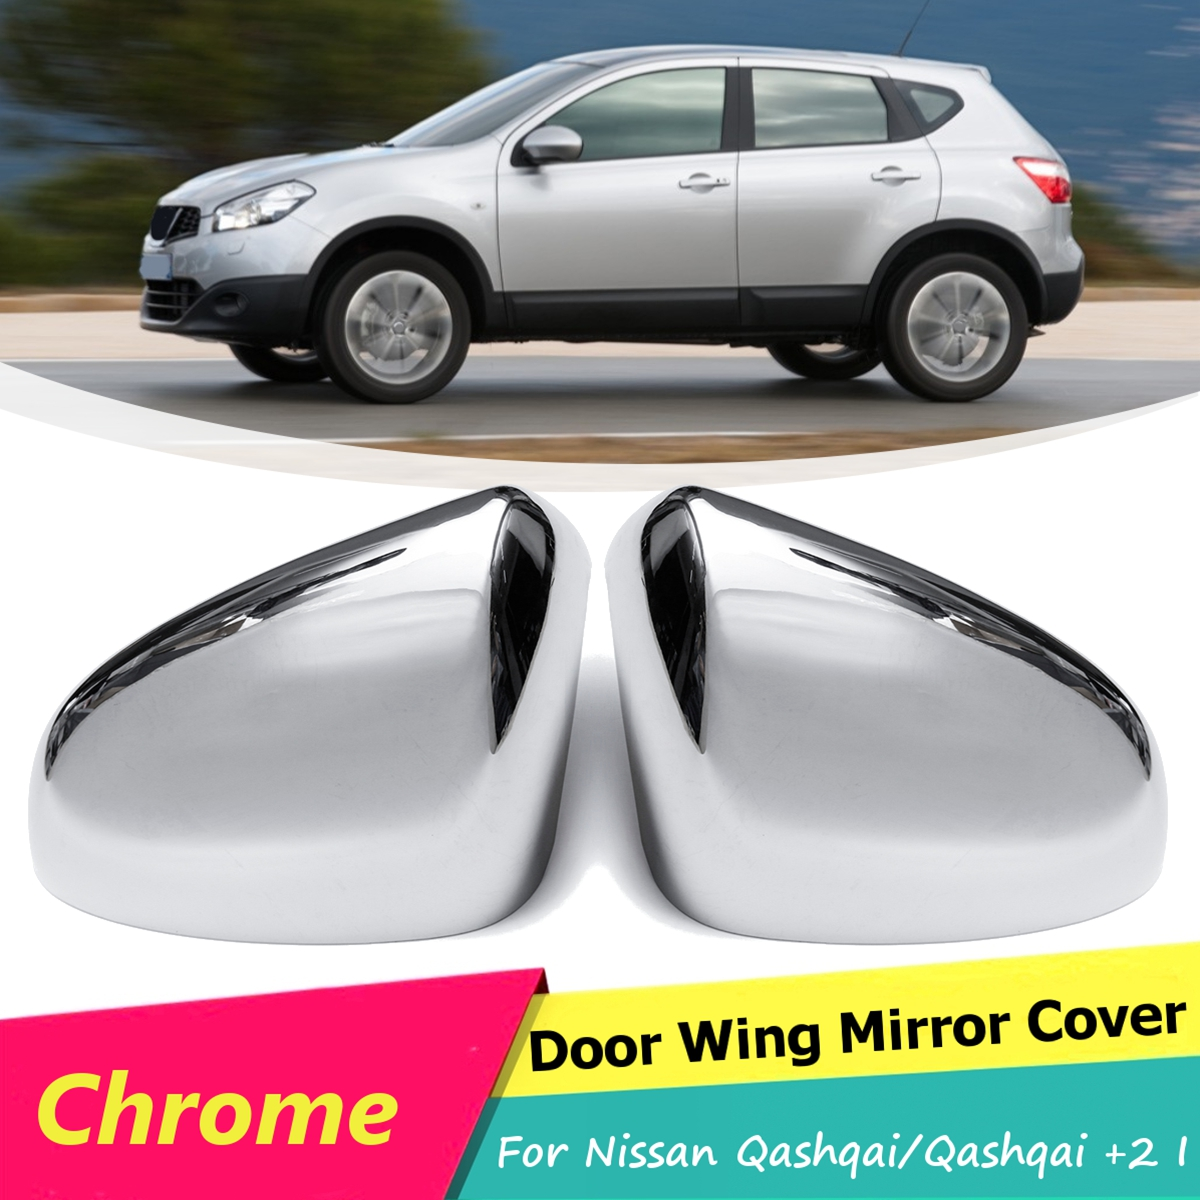 NISSAN QASHQAI GENUINE WING MIRROR COVER LH or RH PAINTED ANY NISSAN COLOUR 2014